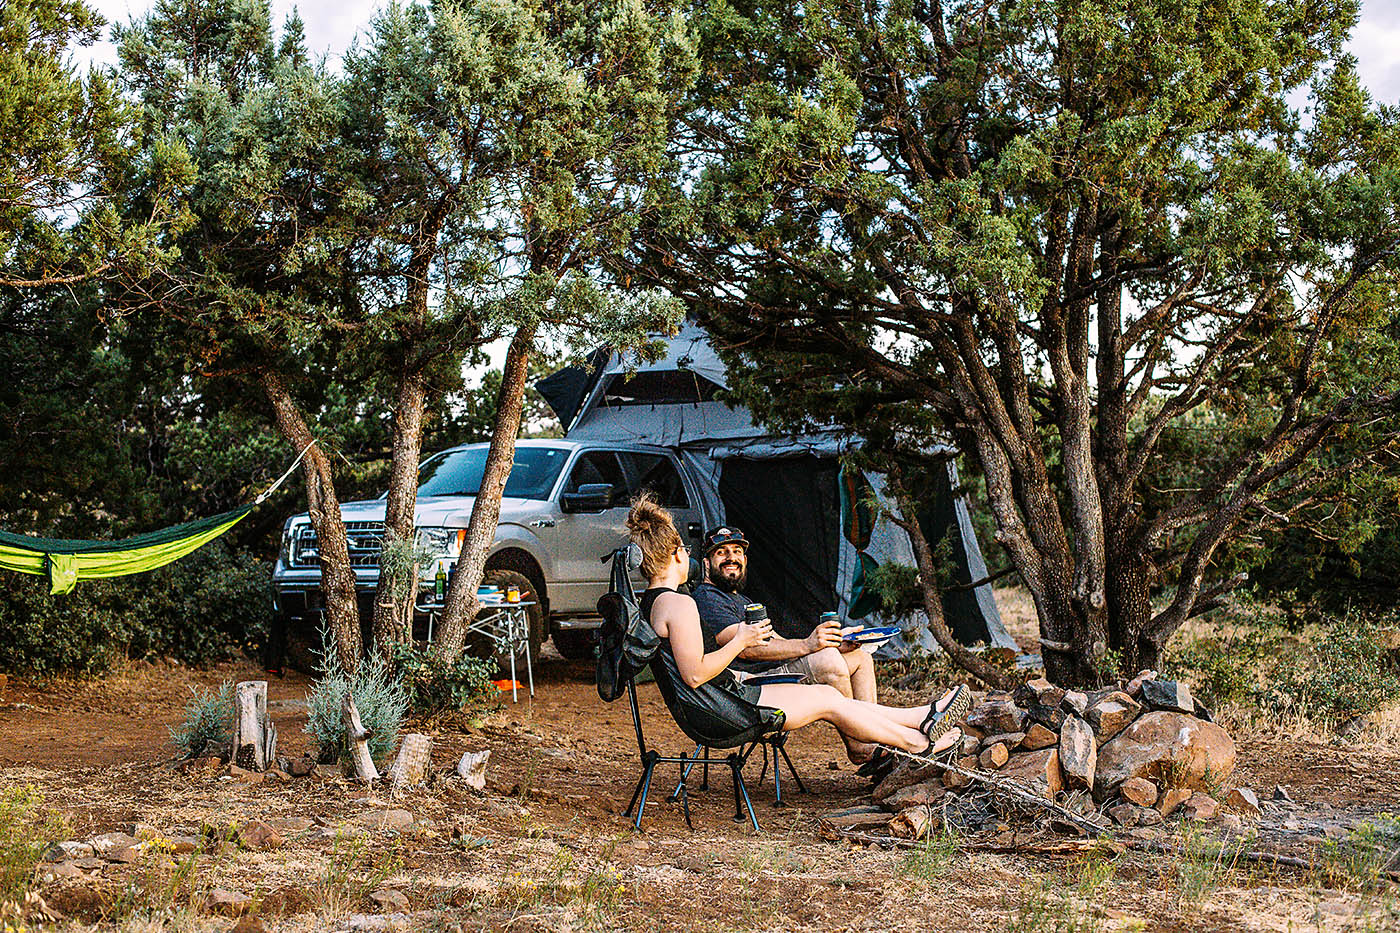 The Very Basics You Need for Camping